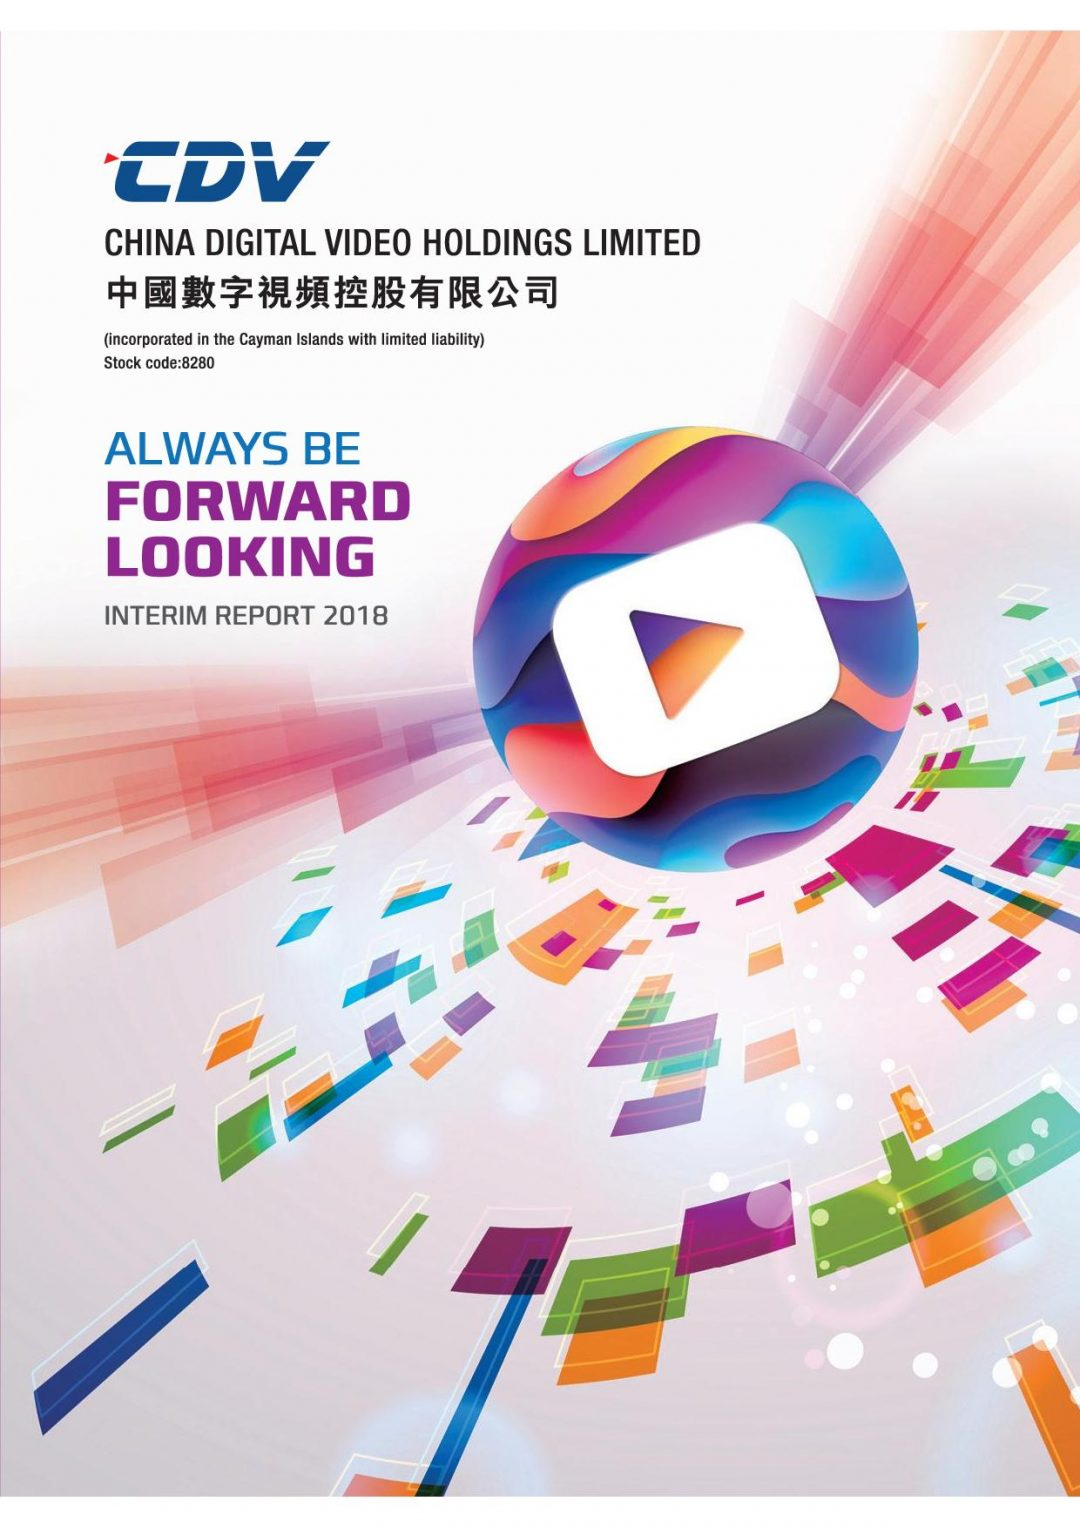 China Digital Video Holdings Limited